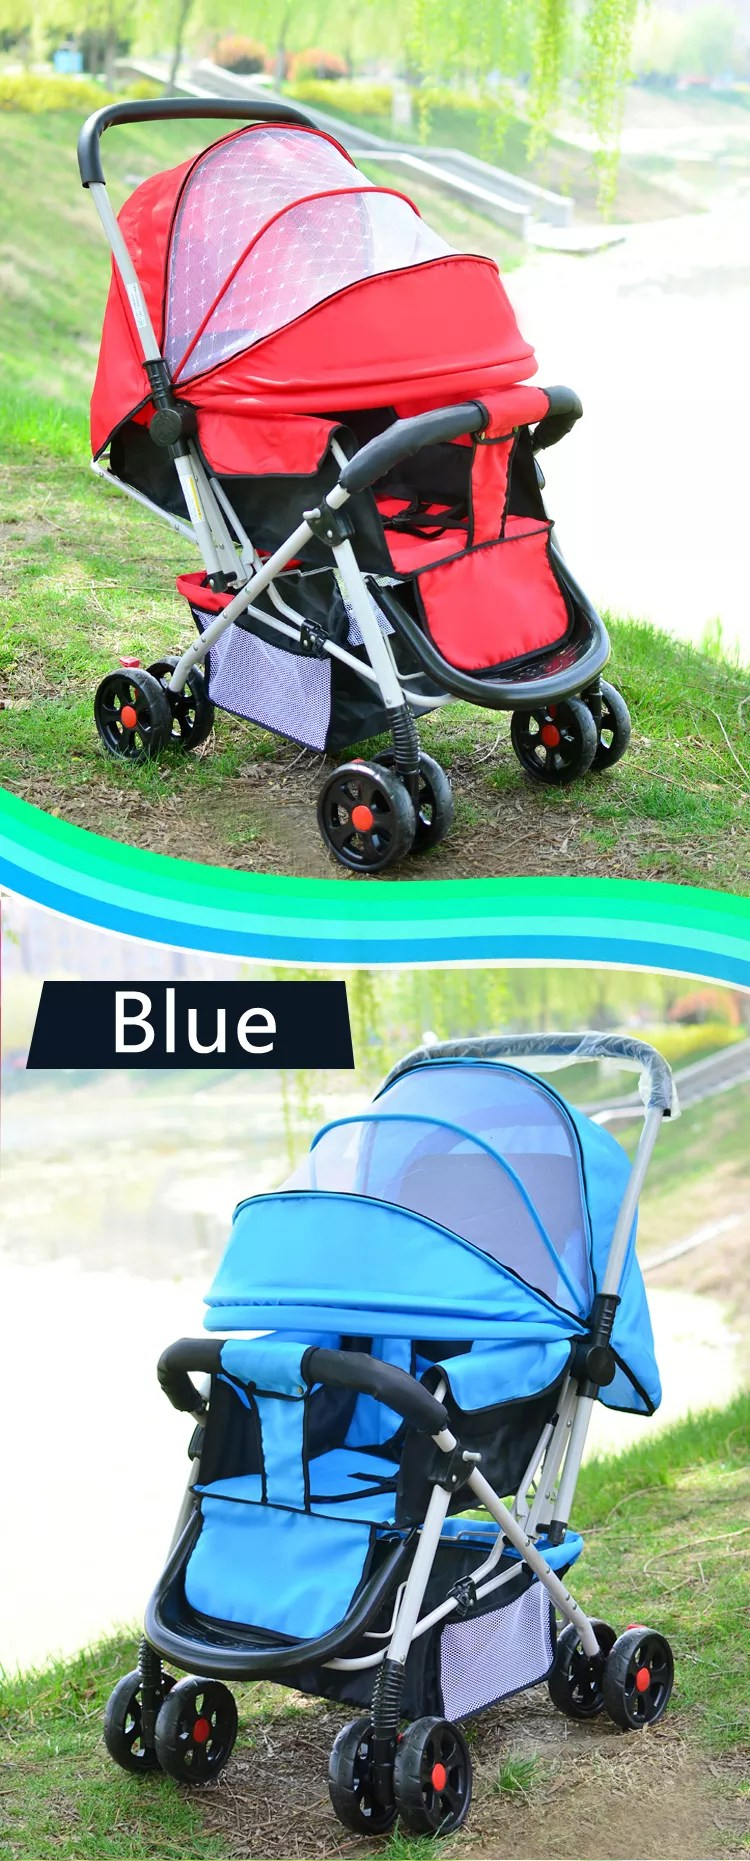 Buggy Stroller India Exporting India And Smart One Hand Folding Baby Time Stroller Buggy Buy Stroller Baby Time Stroller Baby Stroller Pram Product On Alibaba